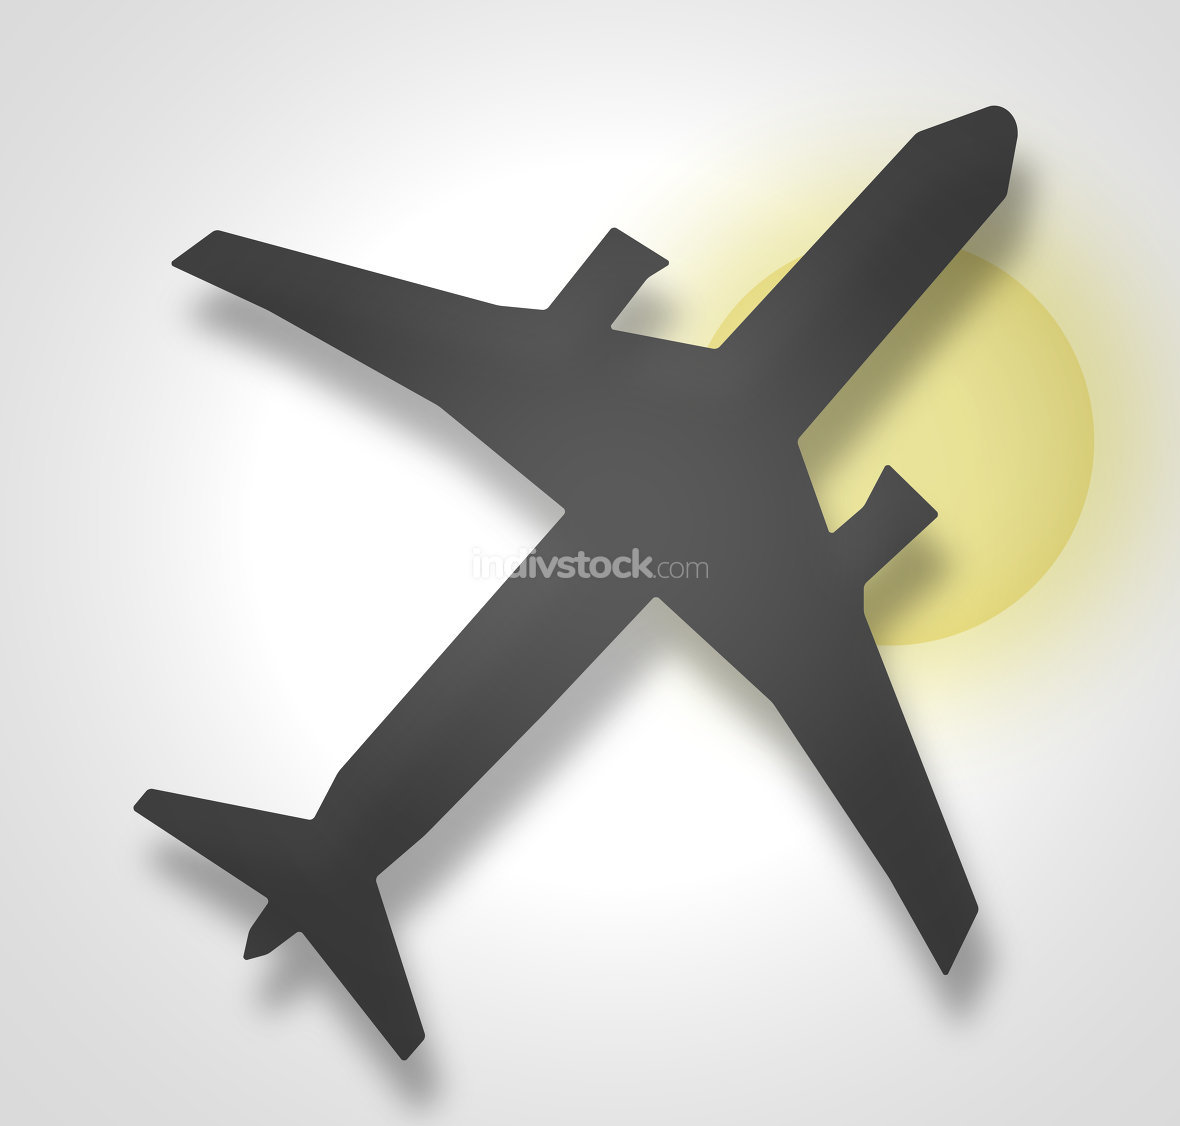 plane black grey background sun abstract